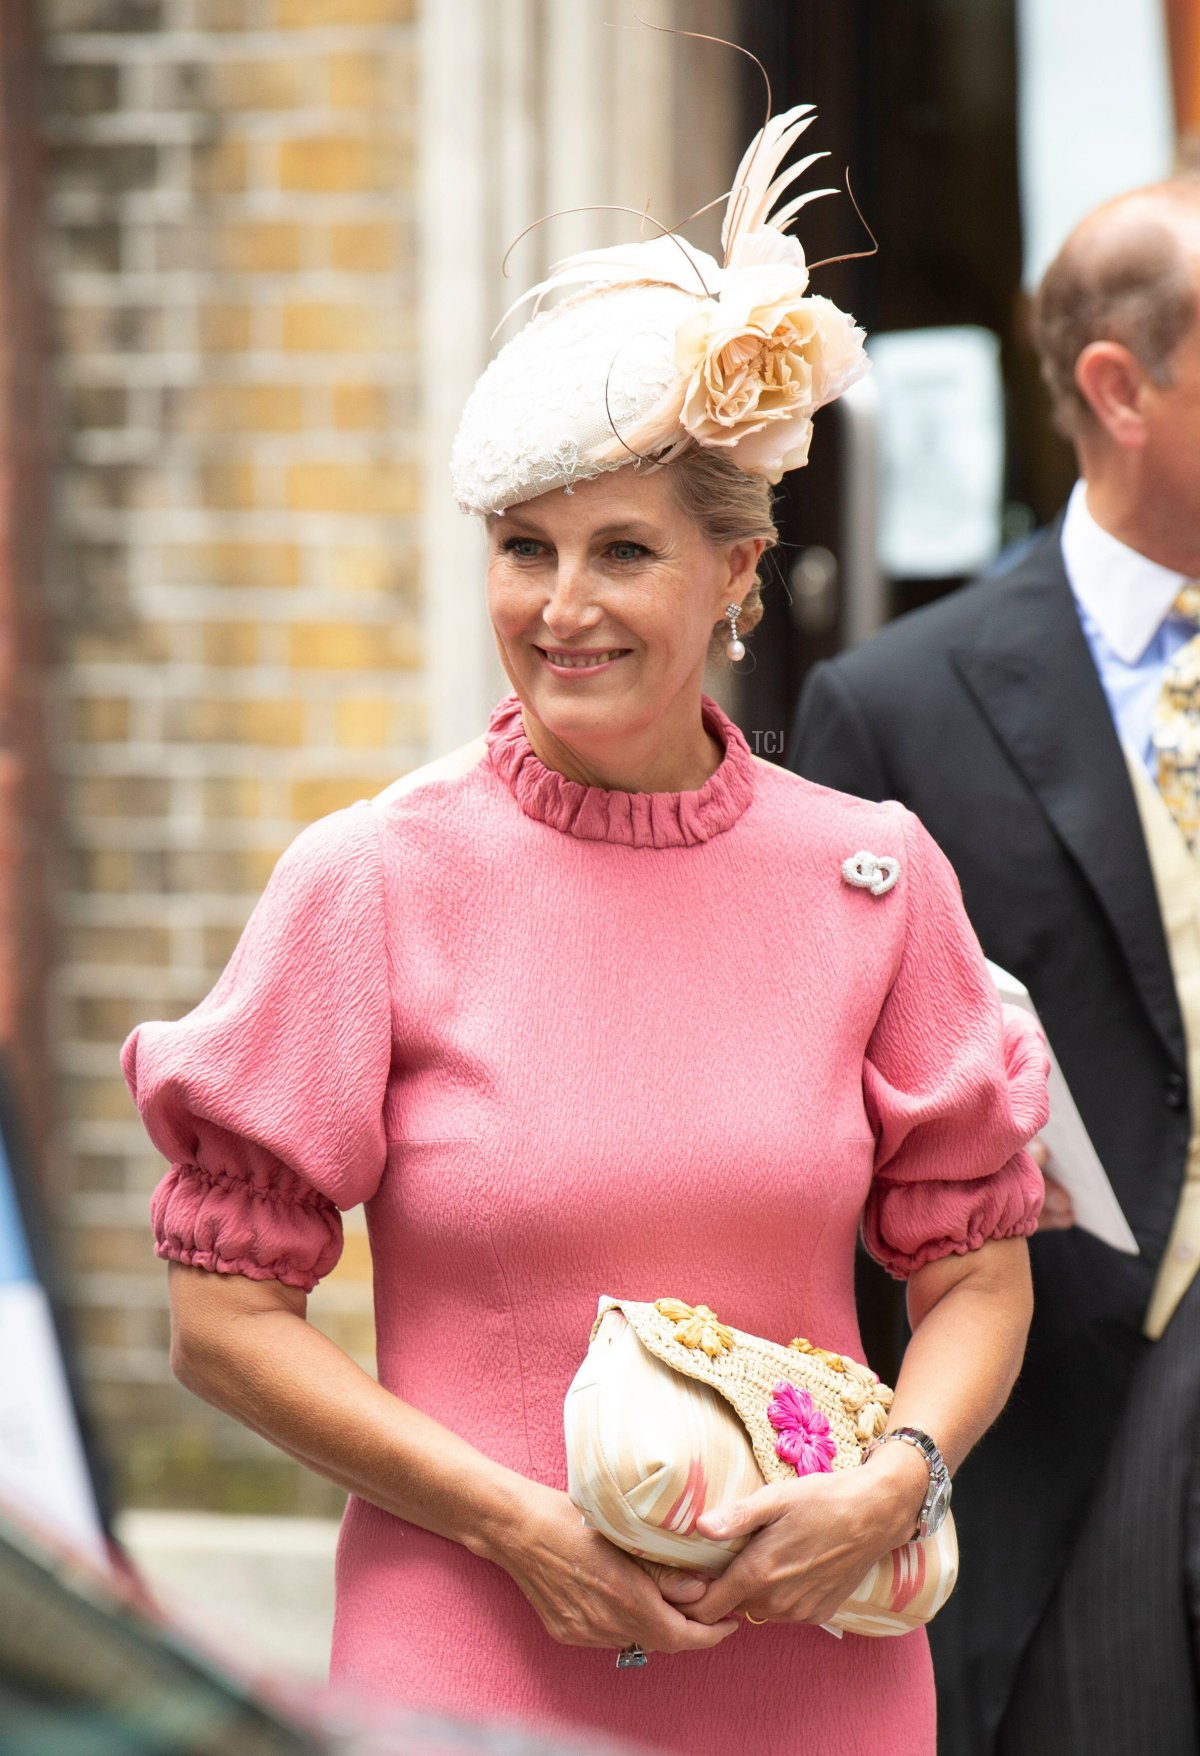 September 10, 2021, London, UK Sophie, Countess of Wessex at the Wedding of Flora Ogilvy and Timothy Vesterberg